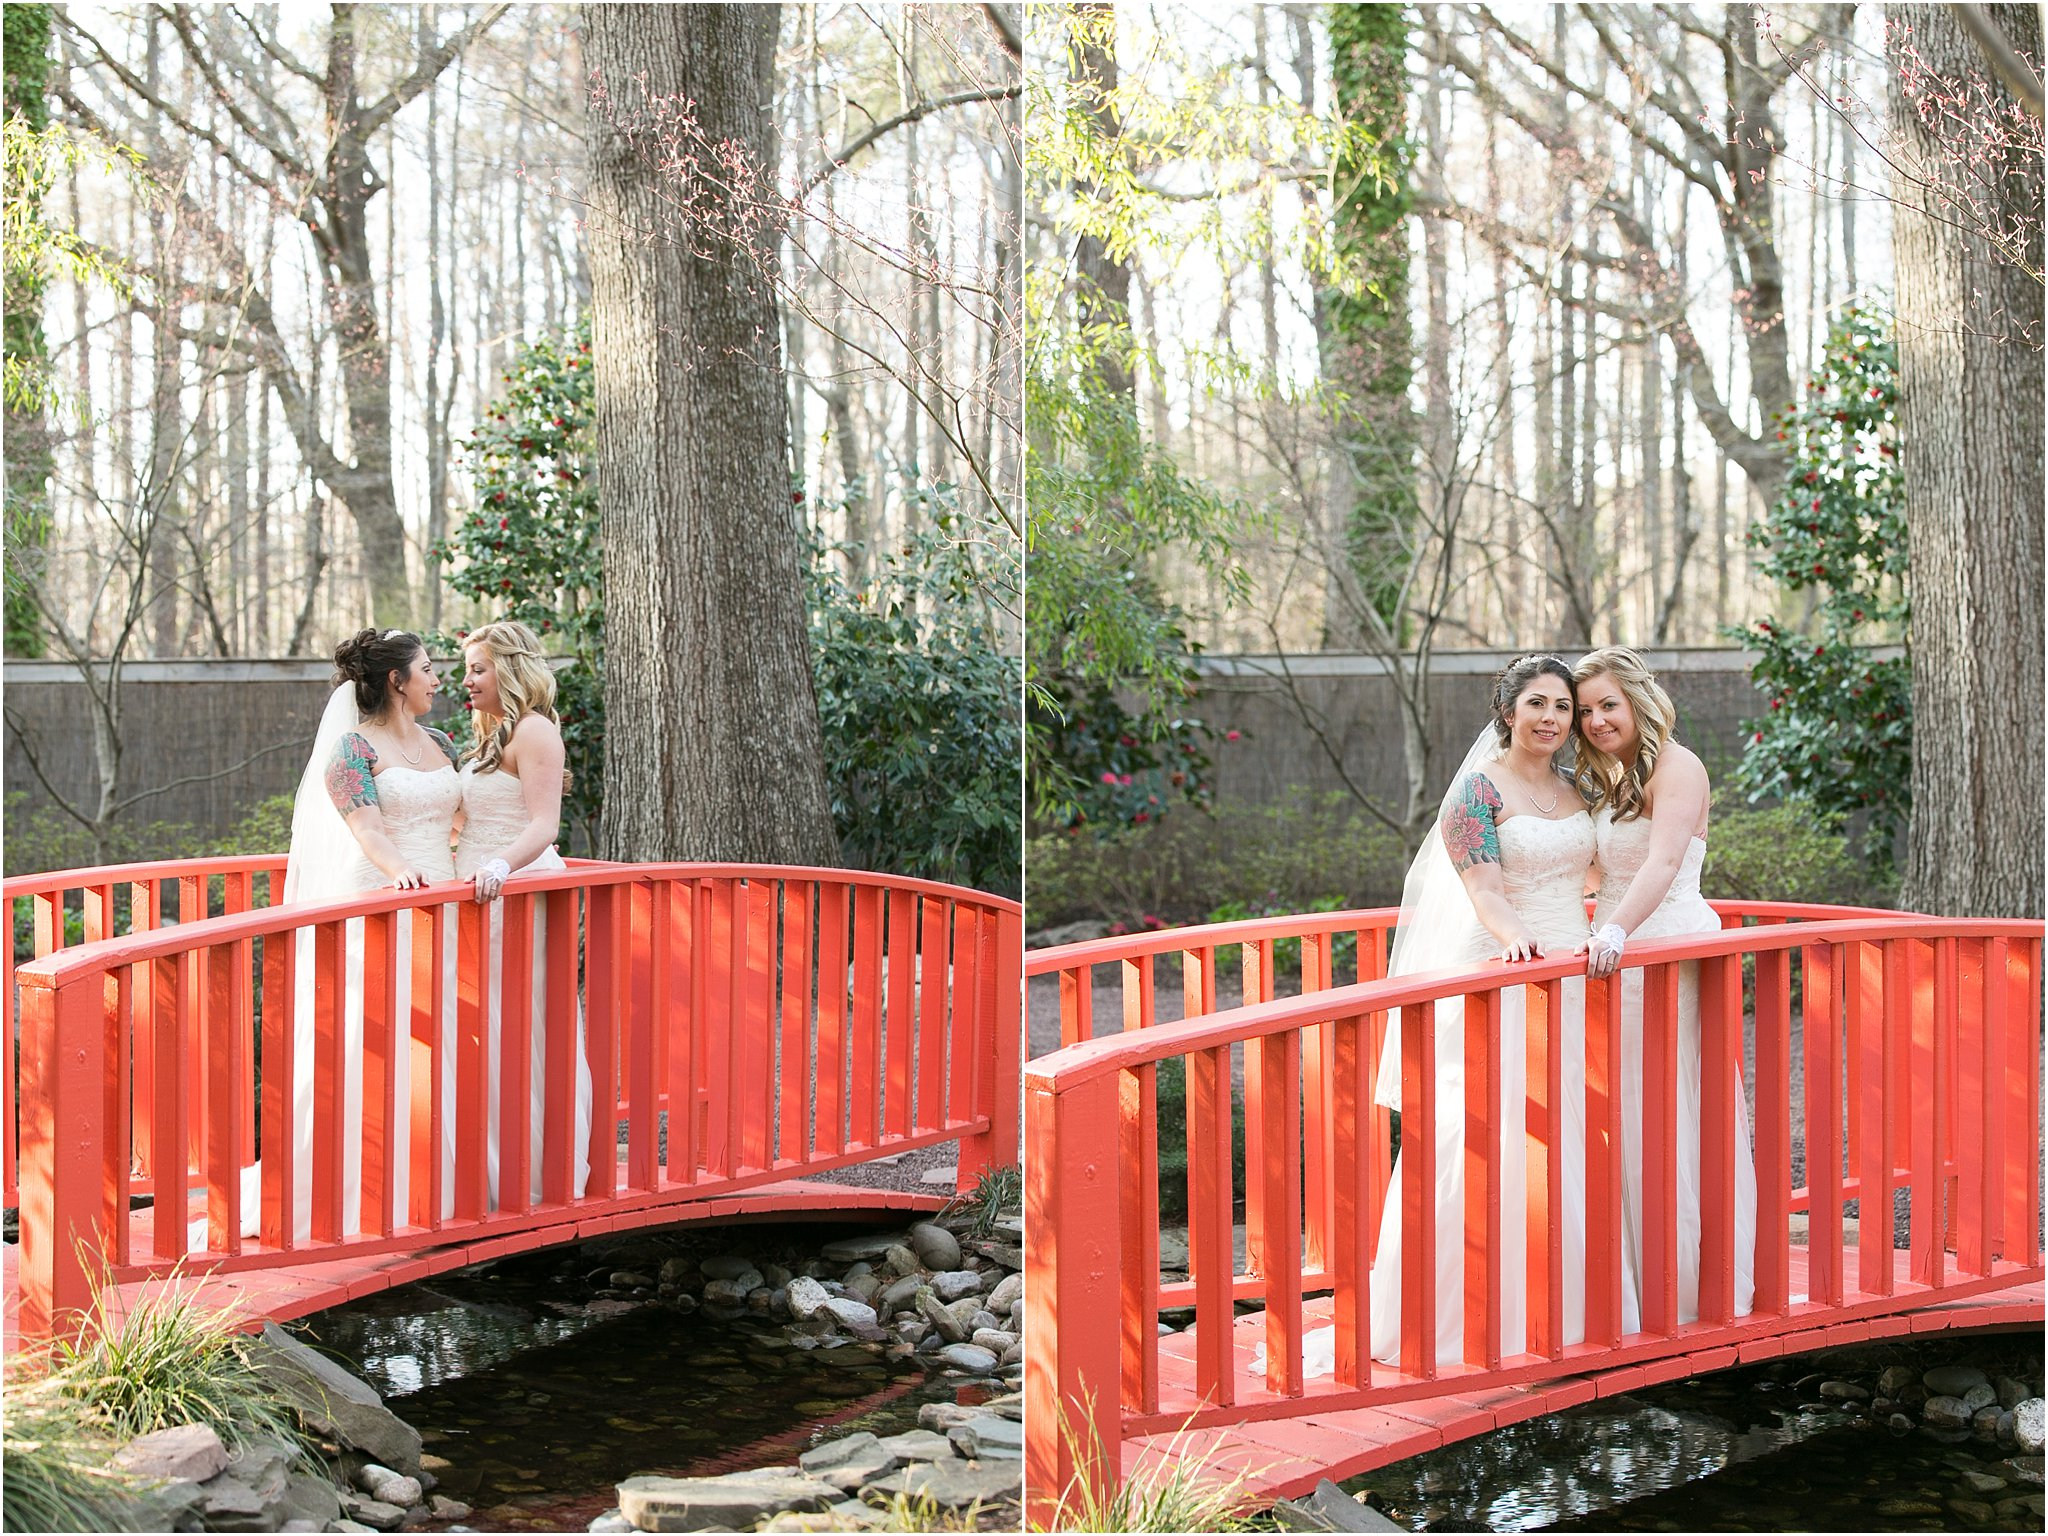 jessica_ryan_photography_redwingpark_wedding_virginia_beach_hampton_roads_1254